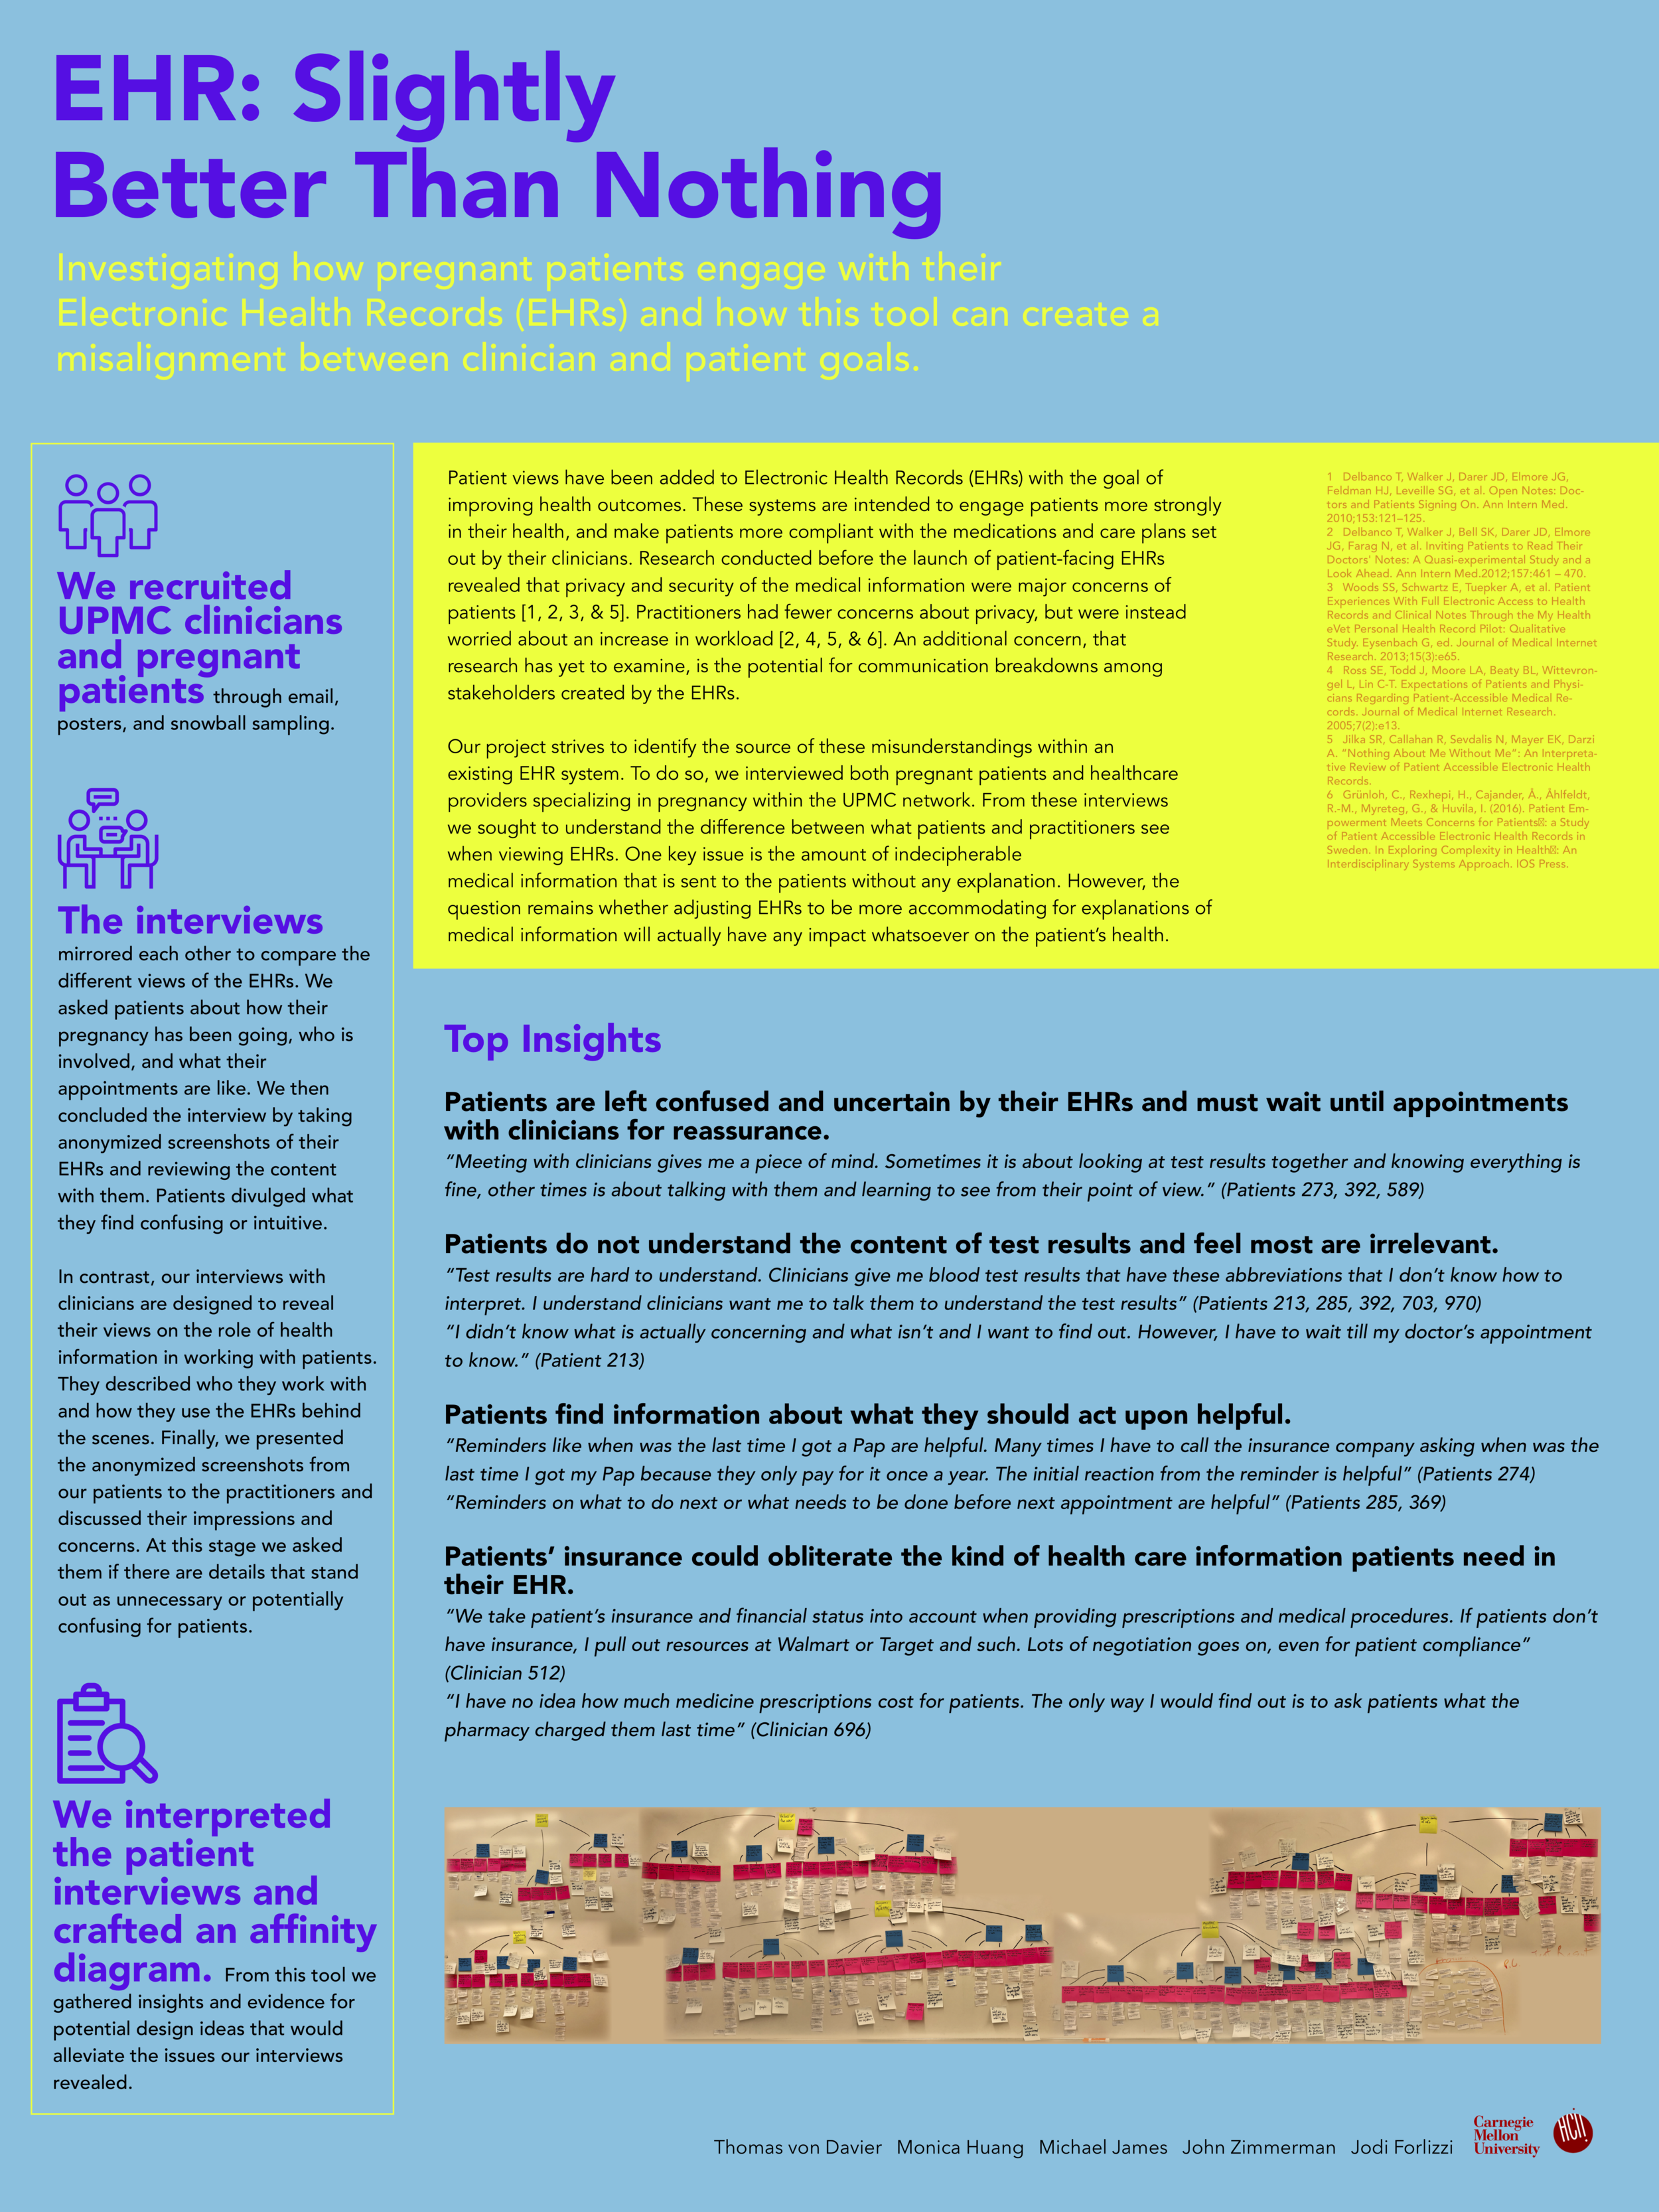 EHR poster_final 2.png